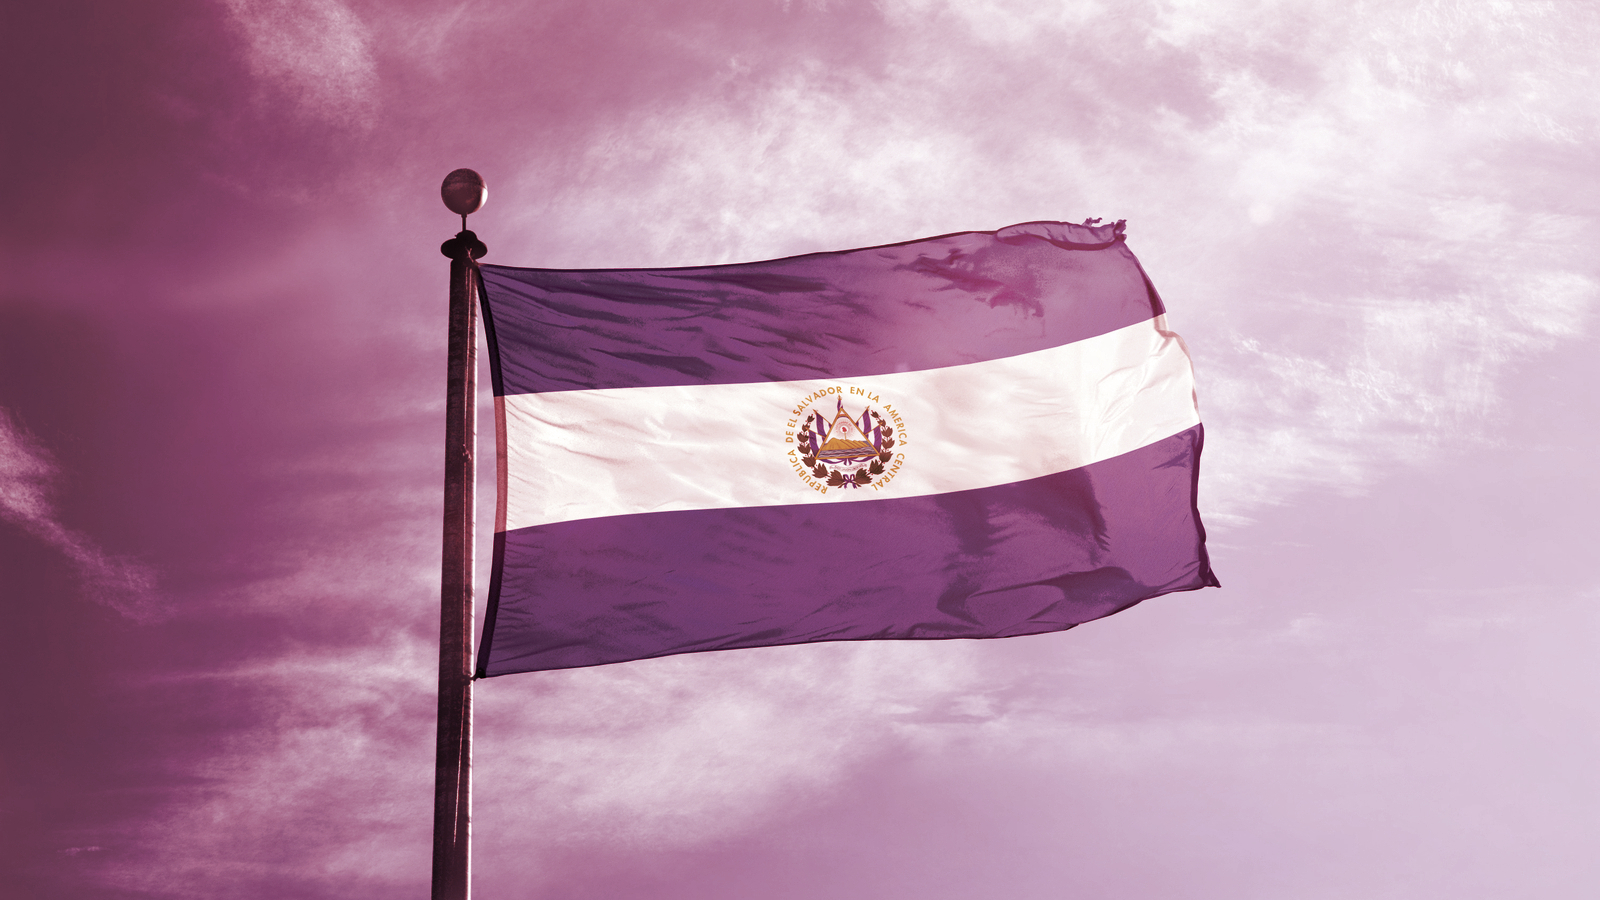 New Round of Protests Against President Bukele's Bitcoin Law in El Salvador